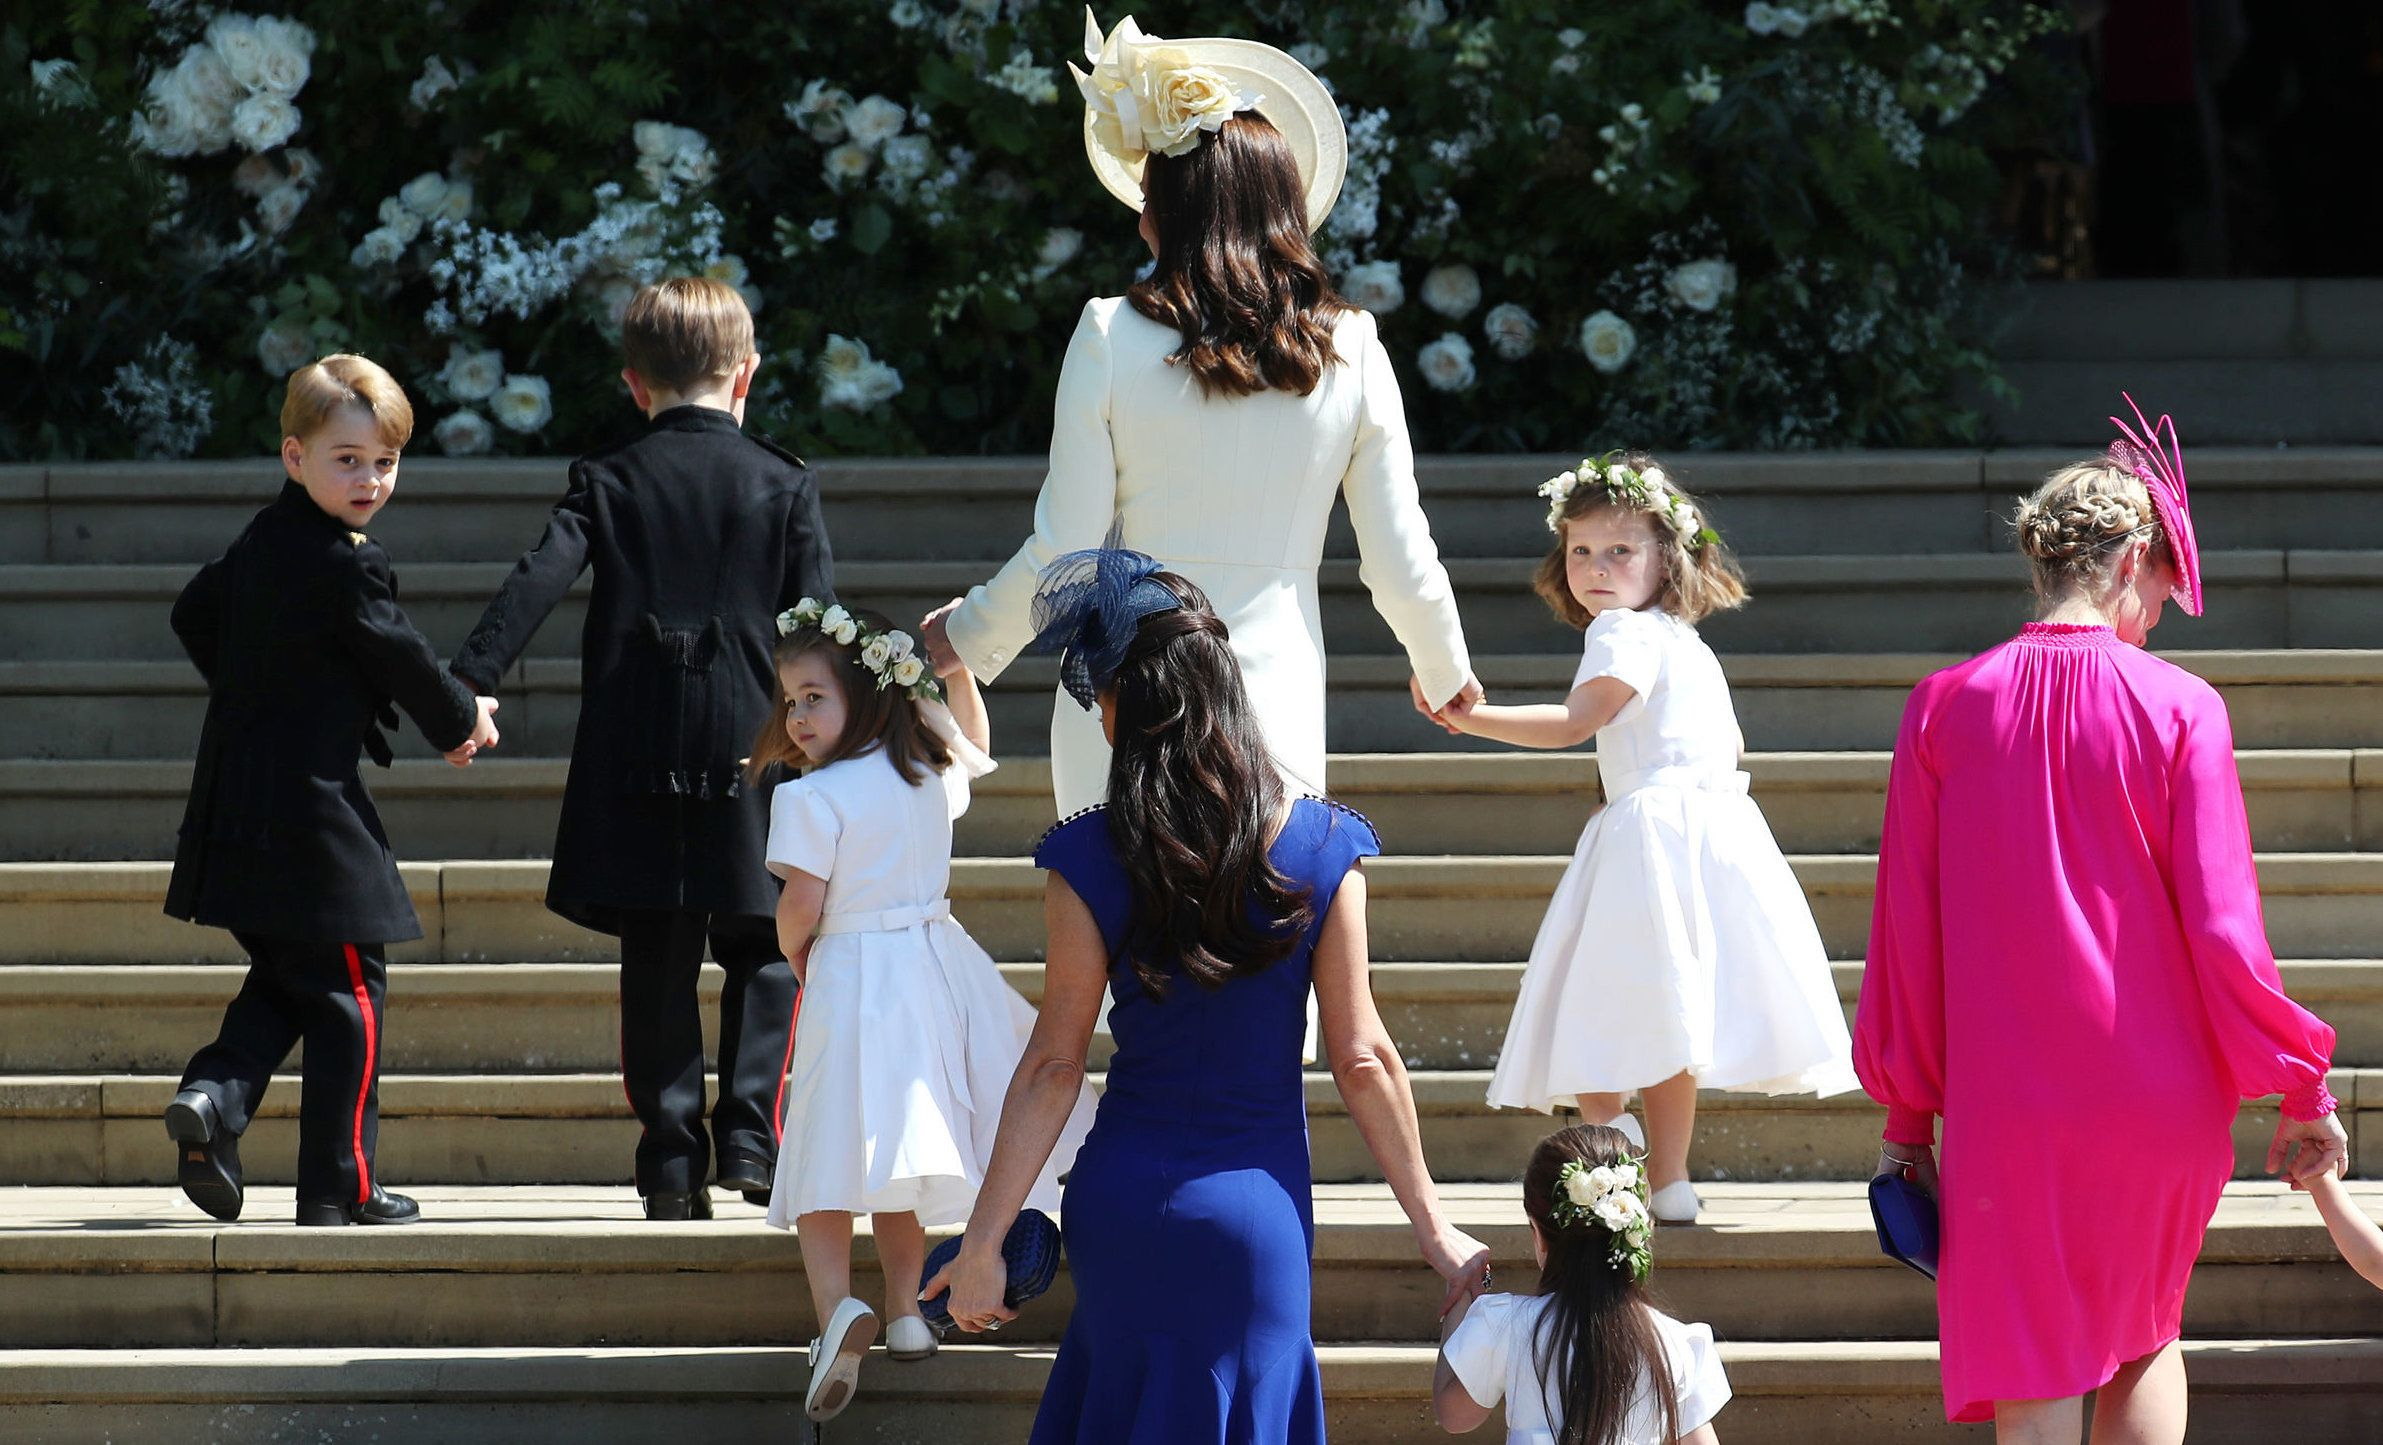 Britain's Catherine, Duchess of Cambridge (C) walks up the west steps with Prince George (L) and bridesmaids for the wedding ceremony of Britain's Prince Harry, Duke of Sussex and US actress Meghan Markle at St George's Chapel, Windsor Castle, in Windsor, on May 19, 2018. (Photo by Jane Barlow / POOL / AFP)        (Photo credit should read JANE BARLOW/AFP/Getty Images)